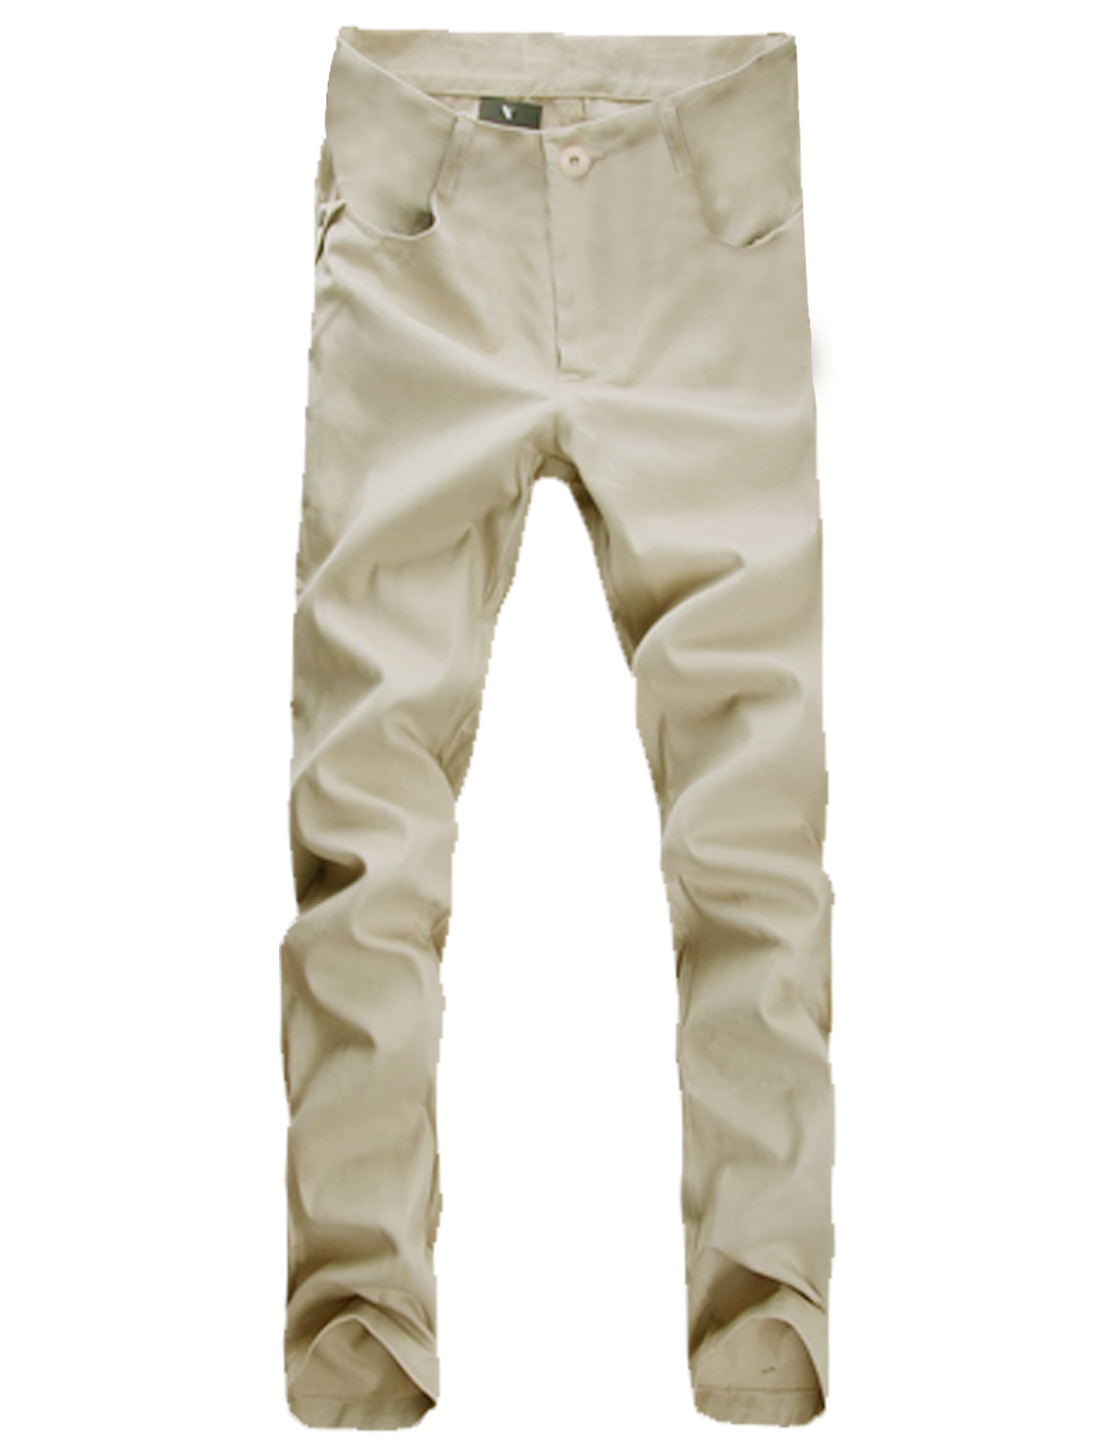 Mens Off White Casual Button Down NEW Stylish Straight Trousers Pants W33